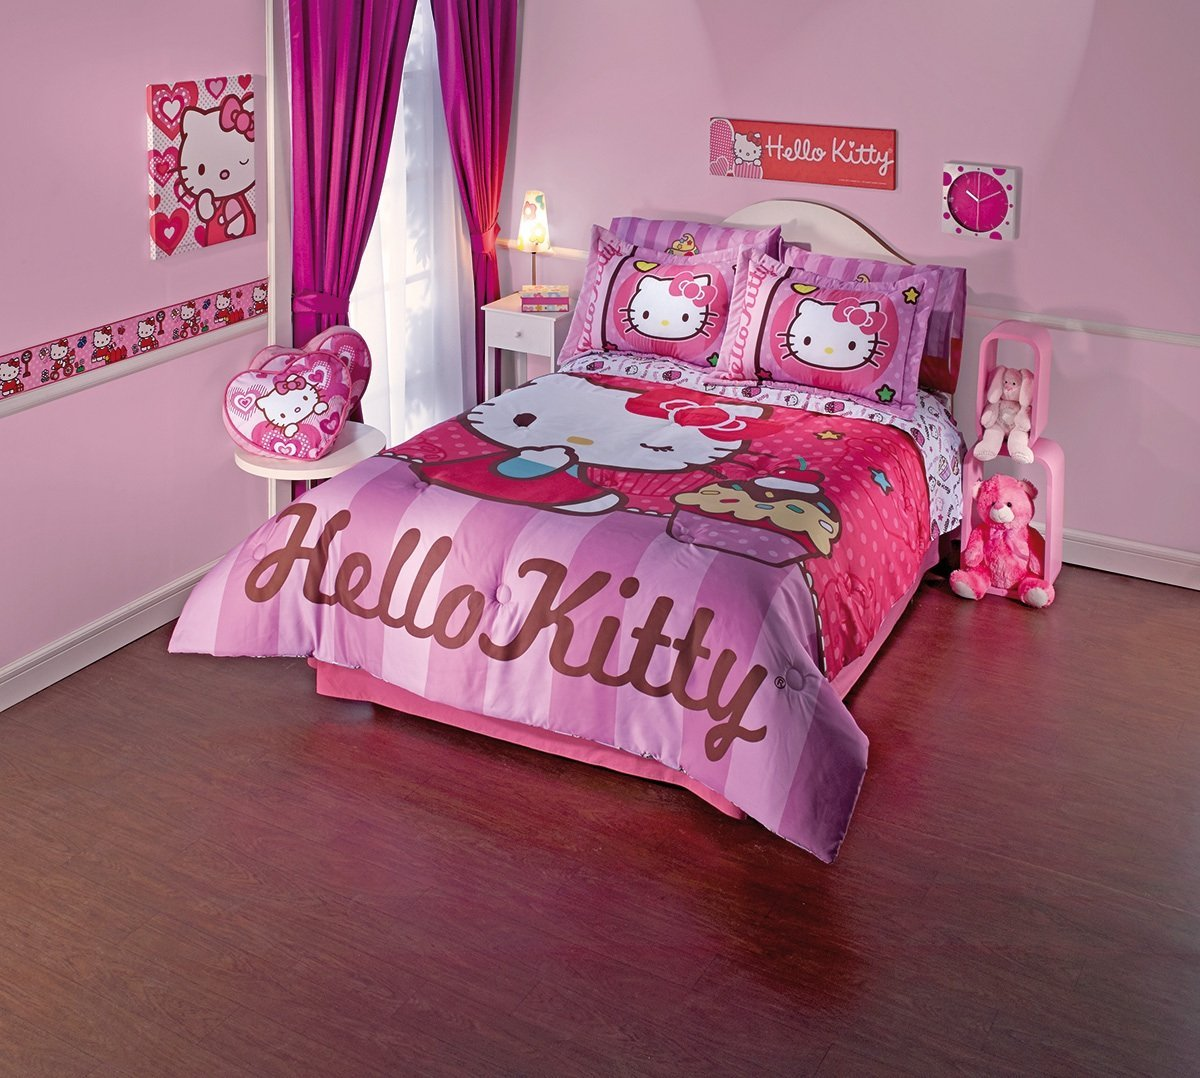 Kids Room Designs | Home Designing